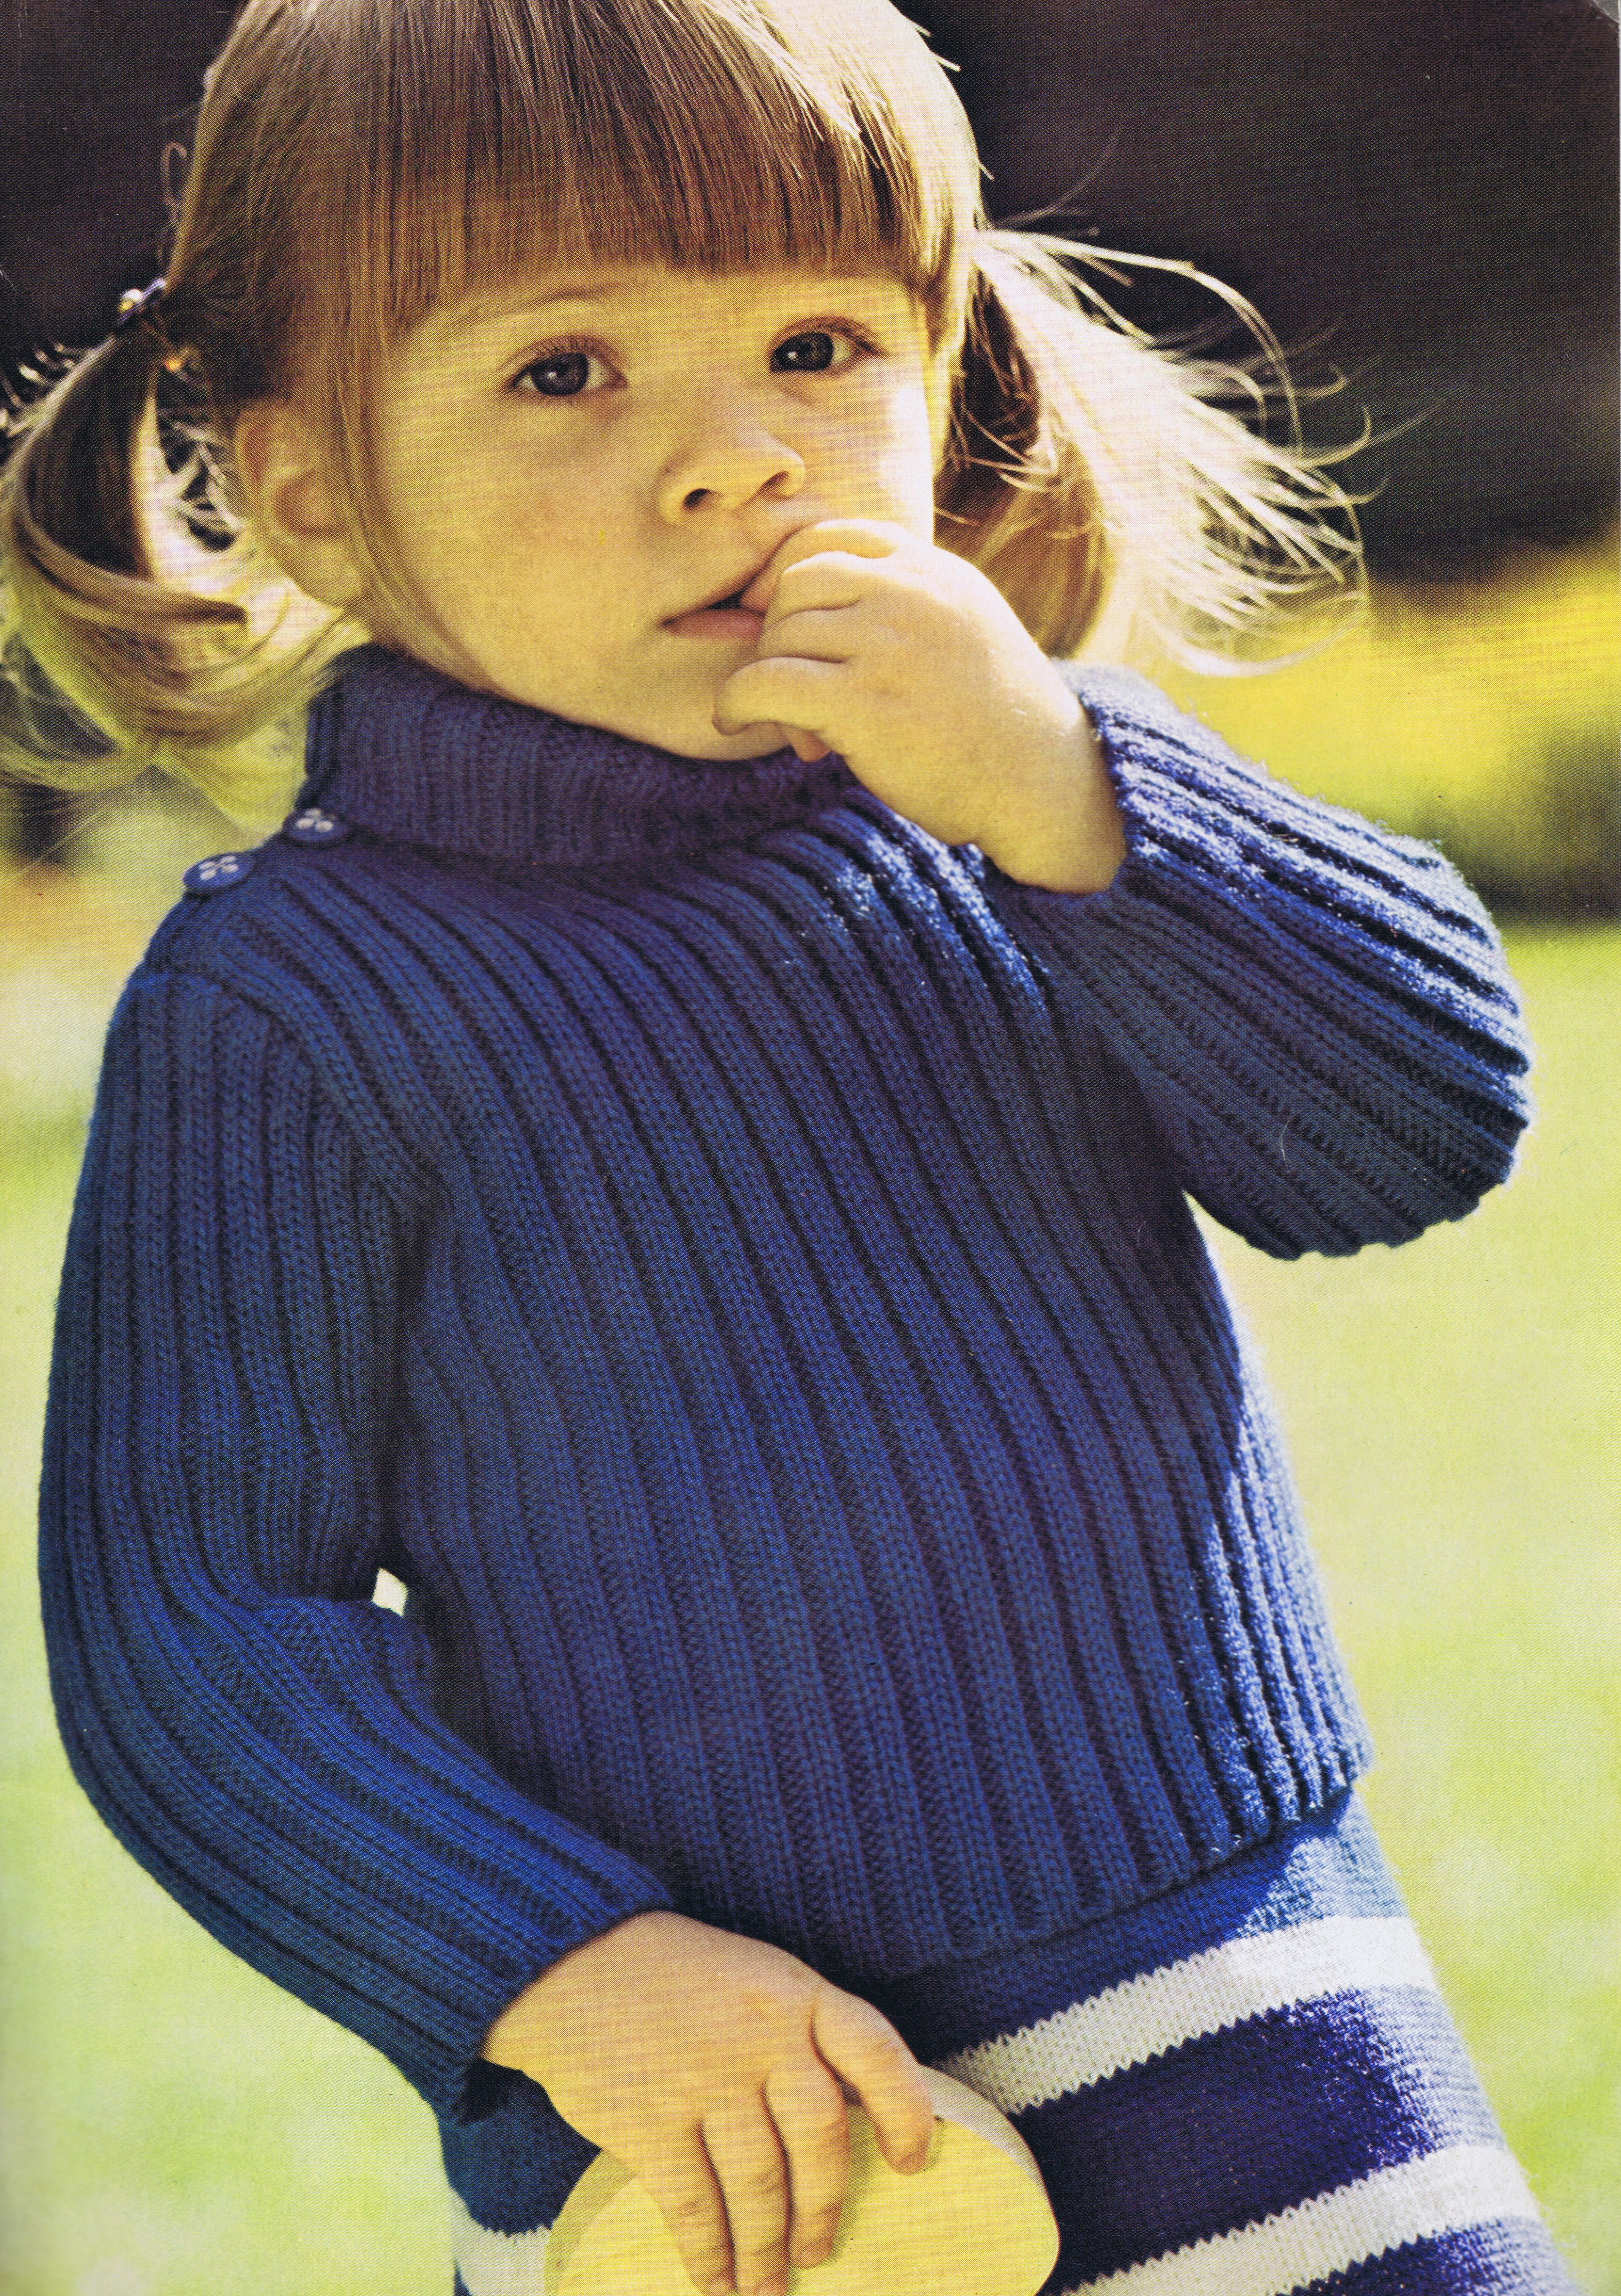 Knitting Patterns For Childrens Sweaters Free Free Knitting Pattern Turtleneck Sweater Children Girls Boys